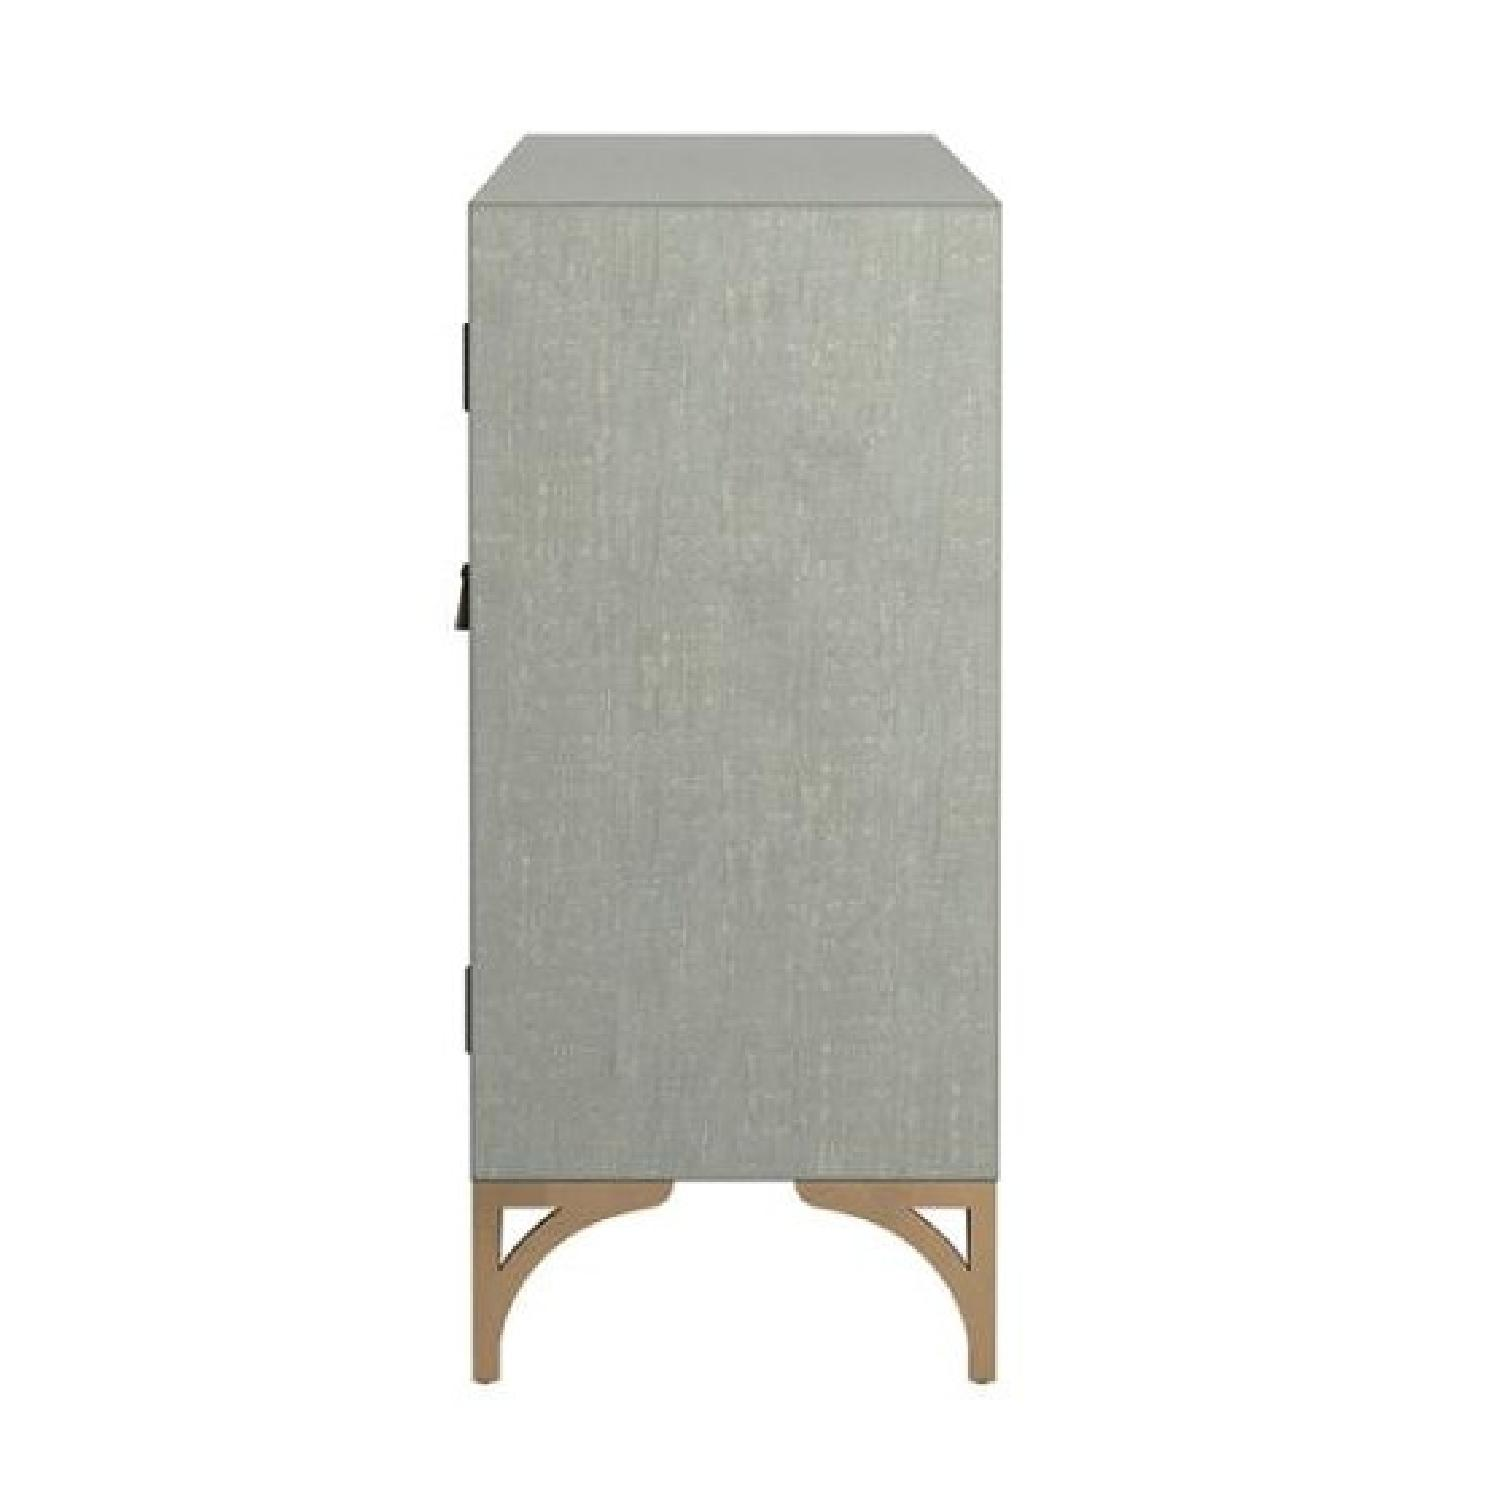 Contemporary Accent Cabinet In Grey Green w/ Bronze Hardware - image-1